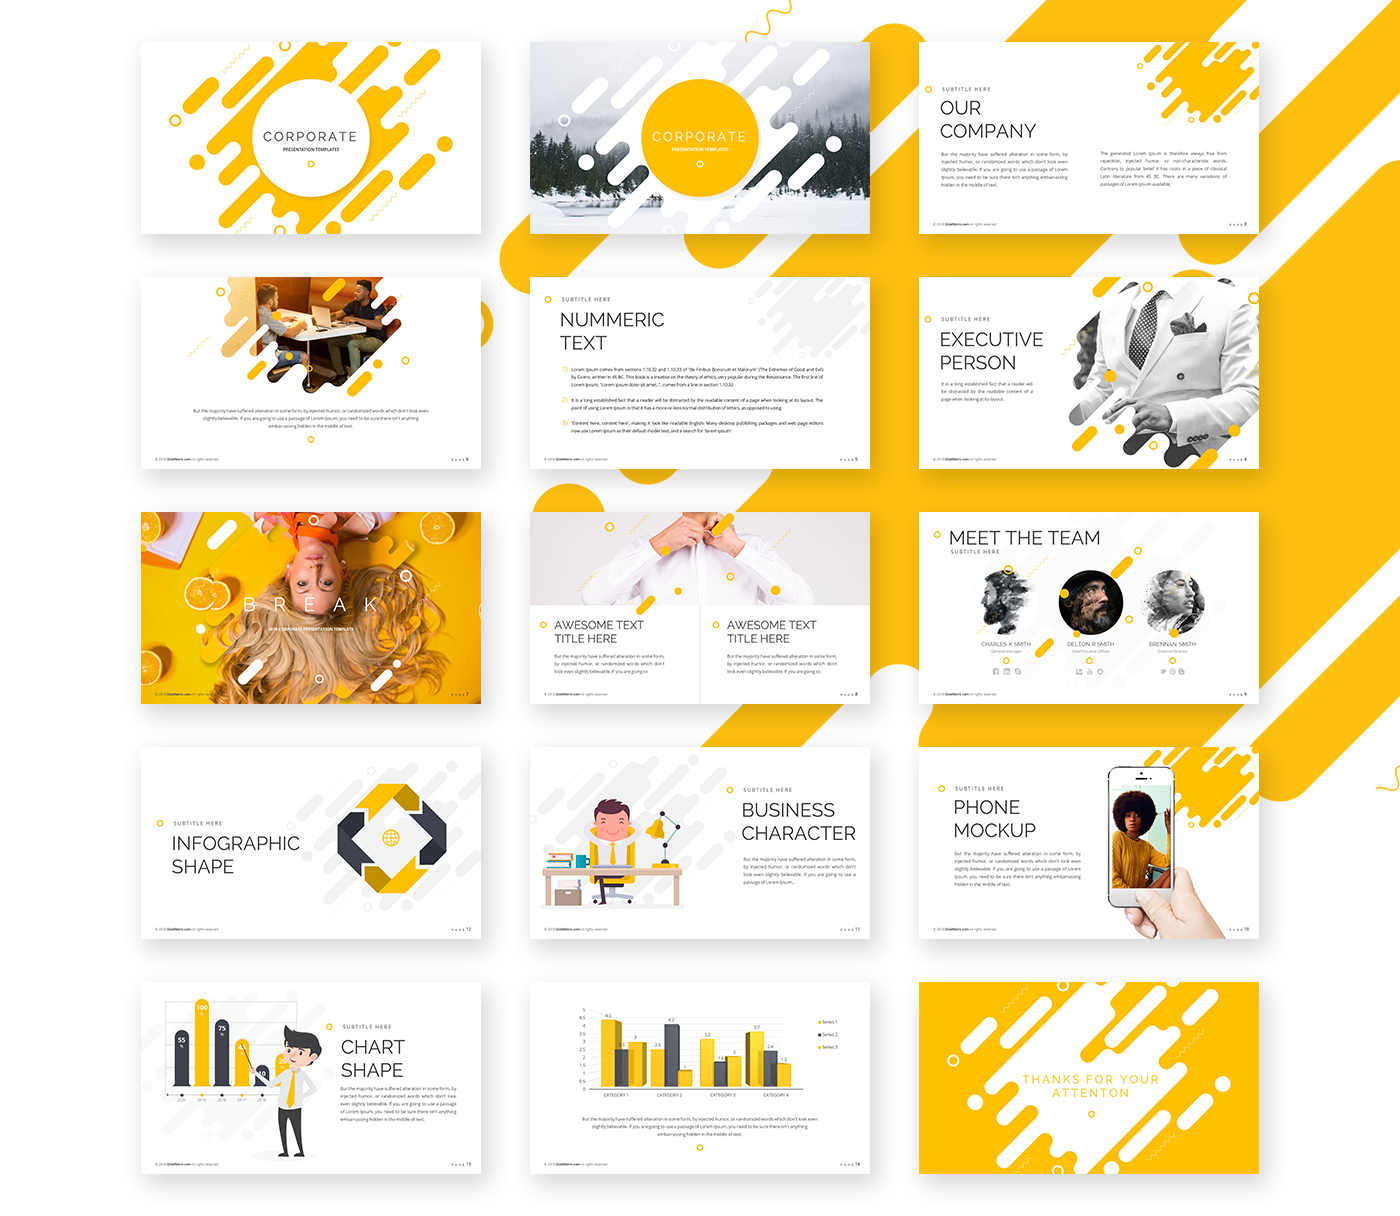 Best Free Powerpoint Templates: Corporate Powerpoint Template – Pixelify